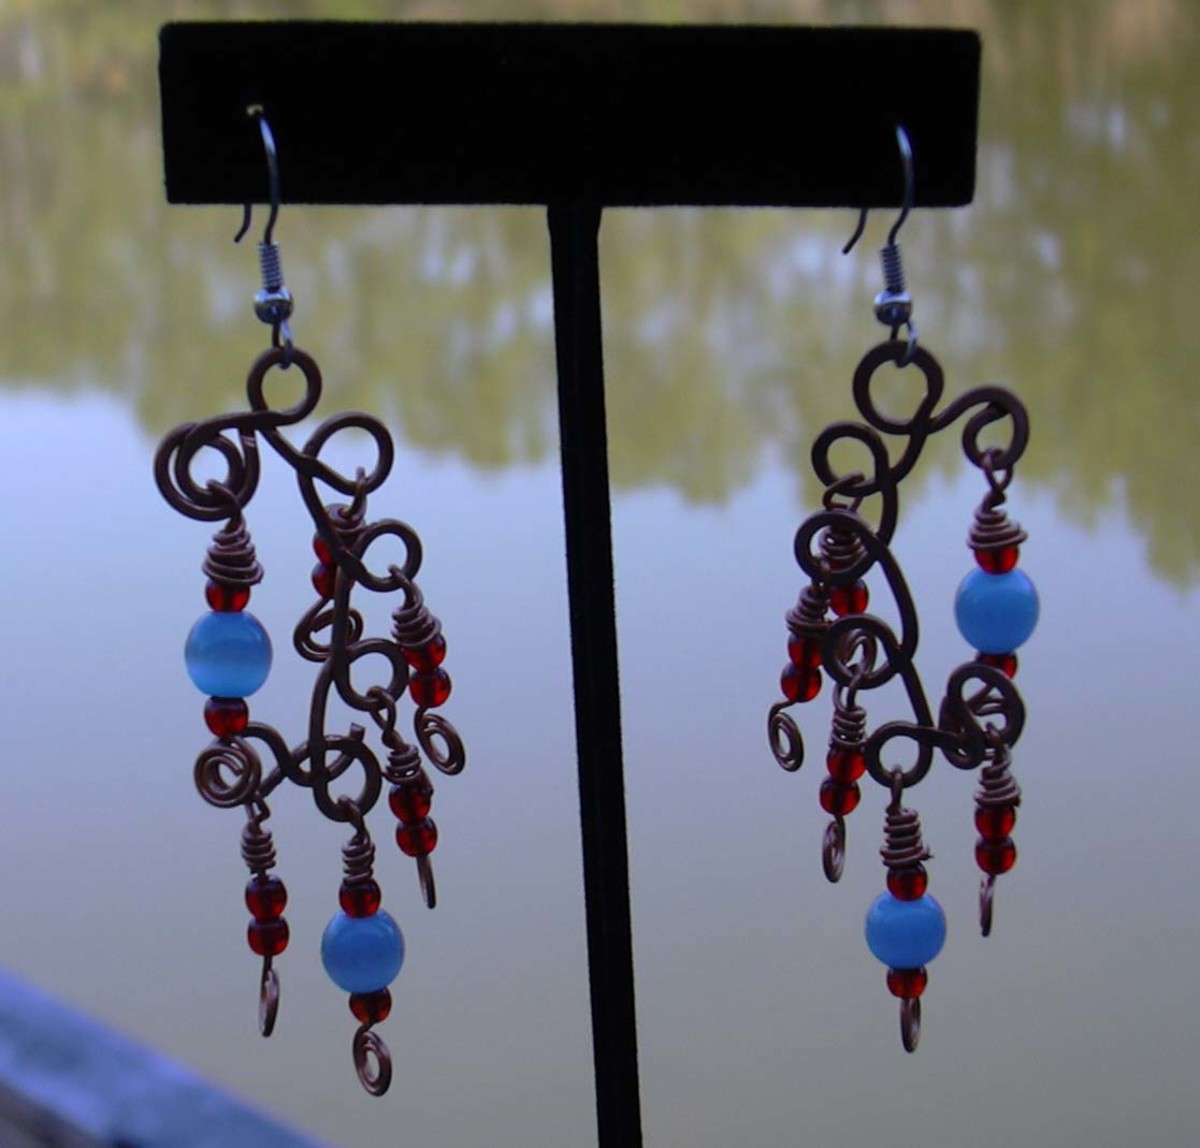 Handcrafted artisan copper and Czech glass chandelier earrings.